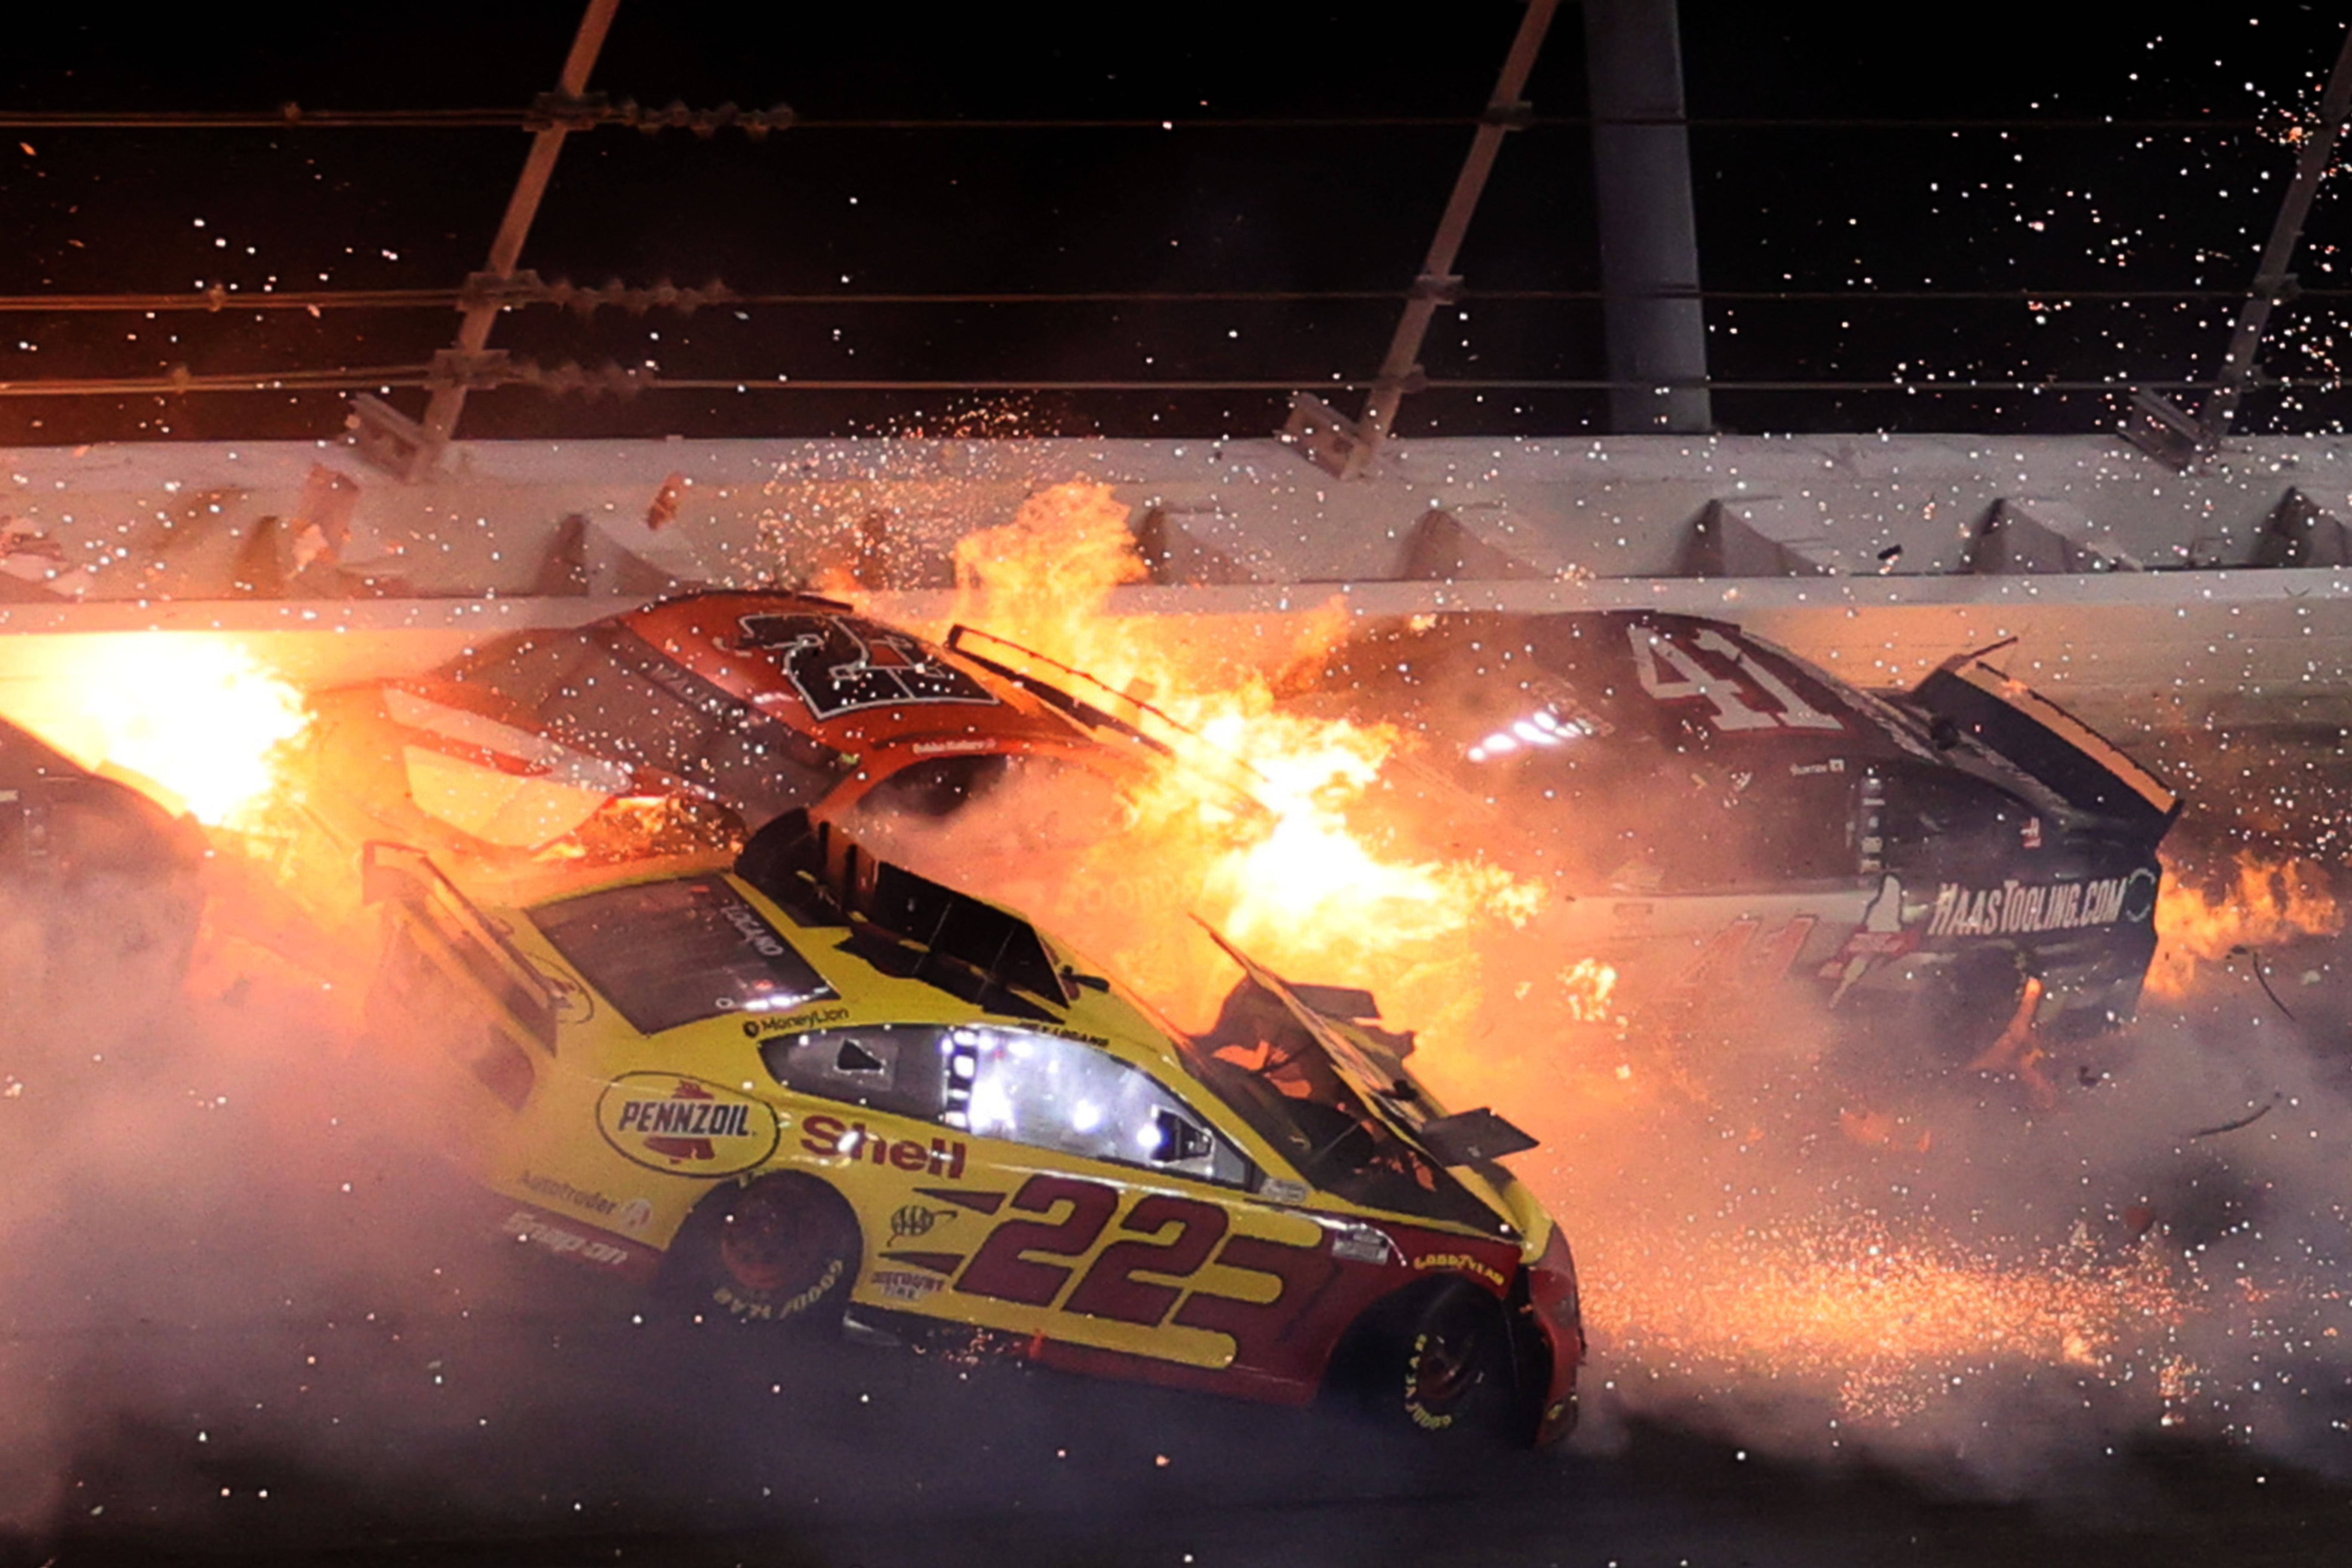 Joey Logano, driver of the #22 Shell Pennzoil Ford, Bubba Wallace, driver of the #23 DoorDash Toyota, and Cole Custer, driver of the #41 HaasTooling.com Ford, are involved in an on-track incident during the NASCAR Cup Series Daytona 500 at Daytona International Speedway in 2021